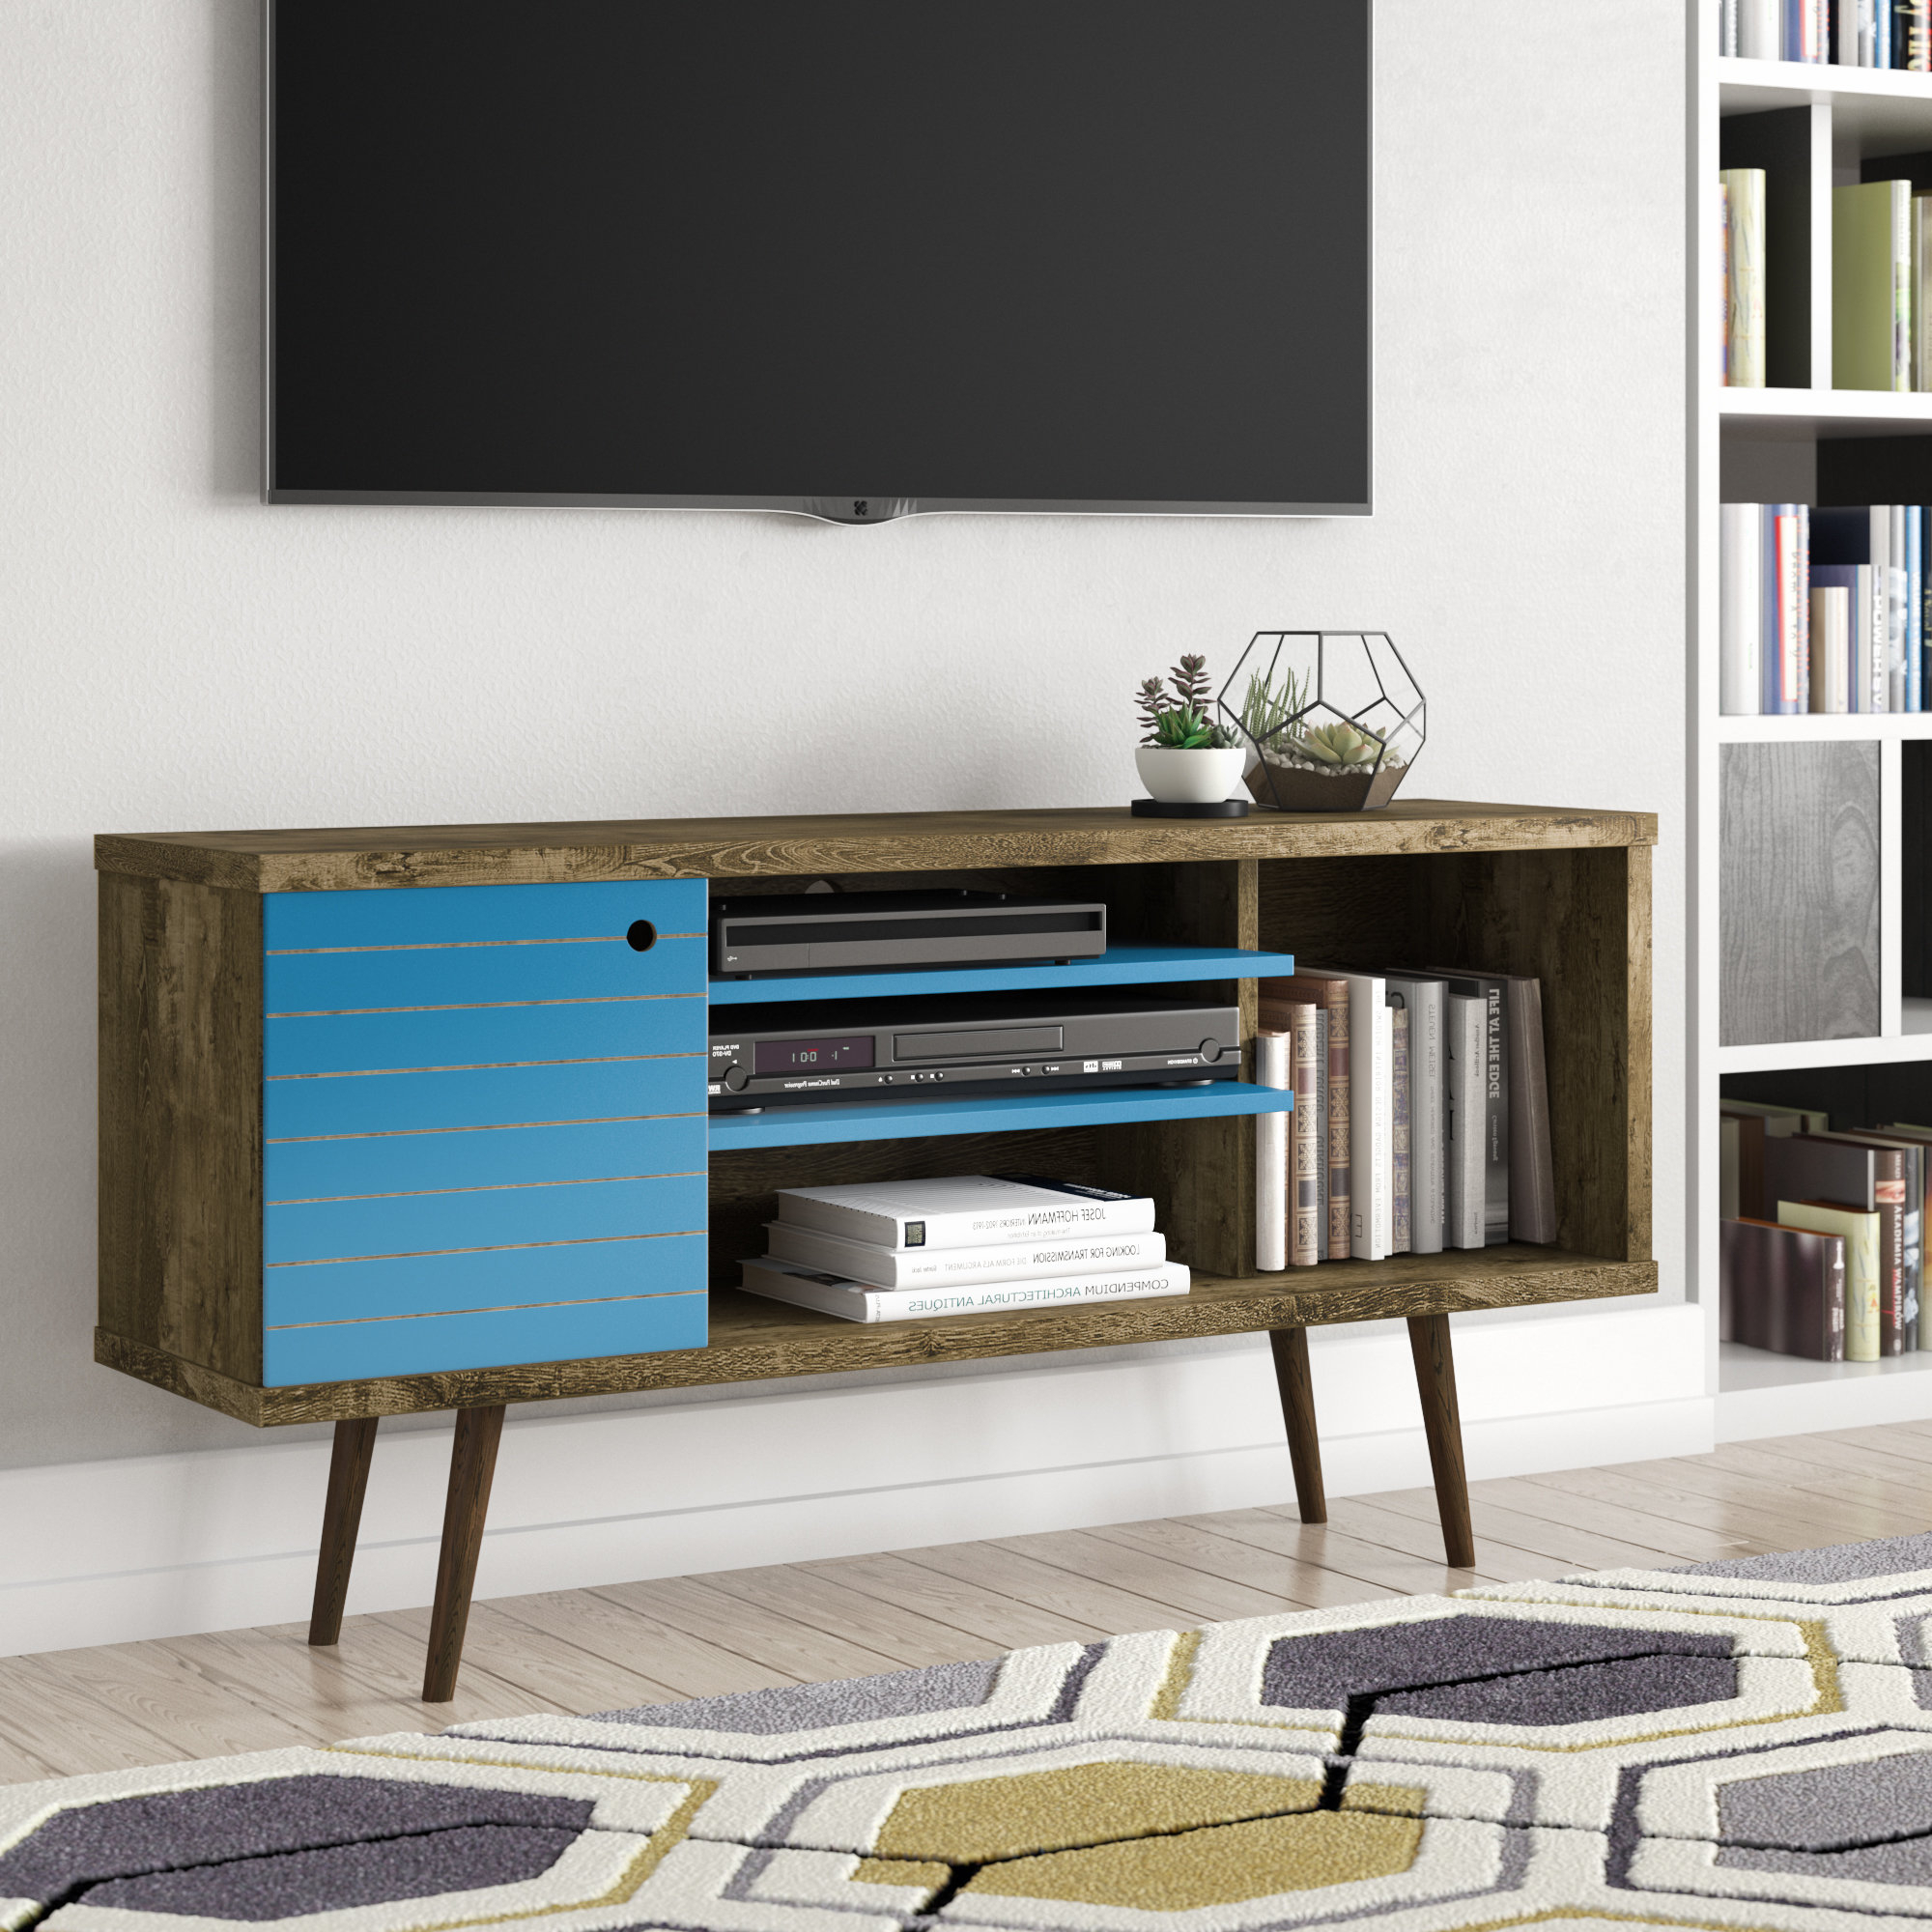 Wayfair Within Recent Iconic Tv Stands (View 19 of 20)